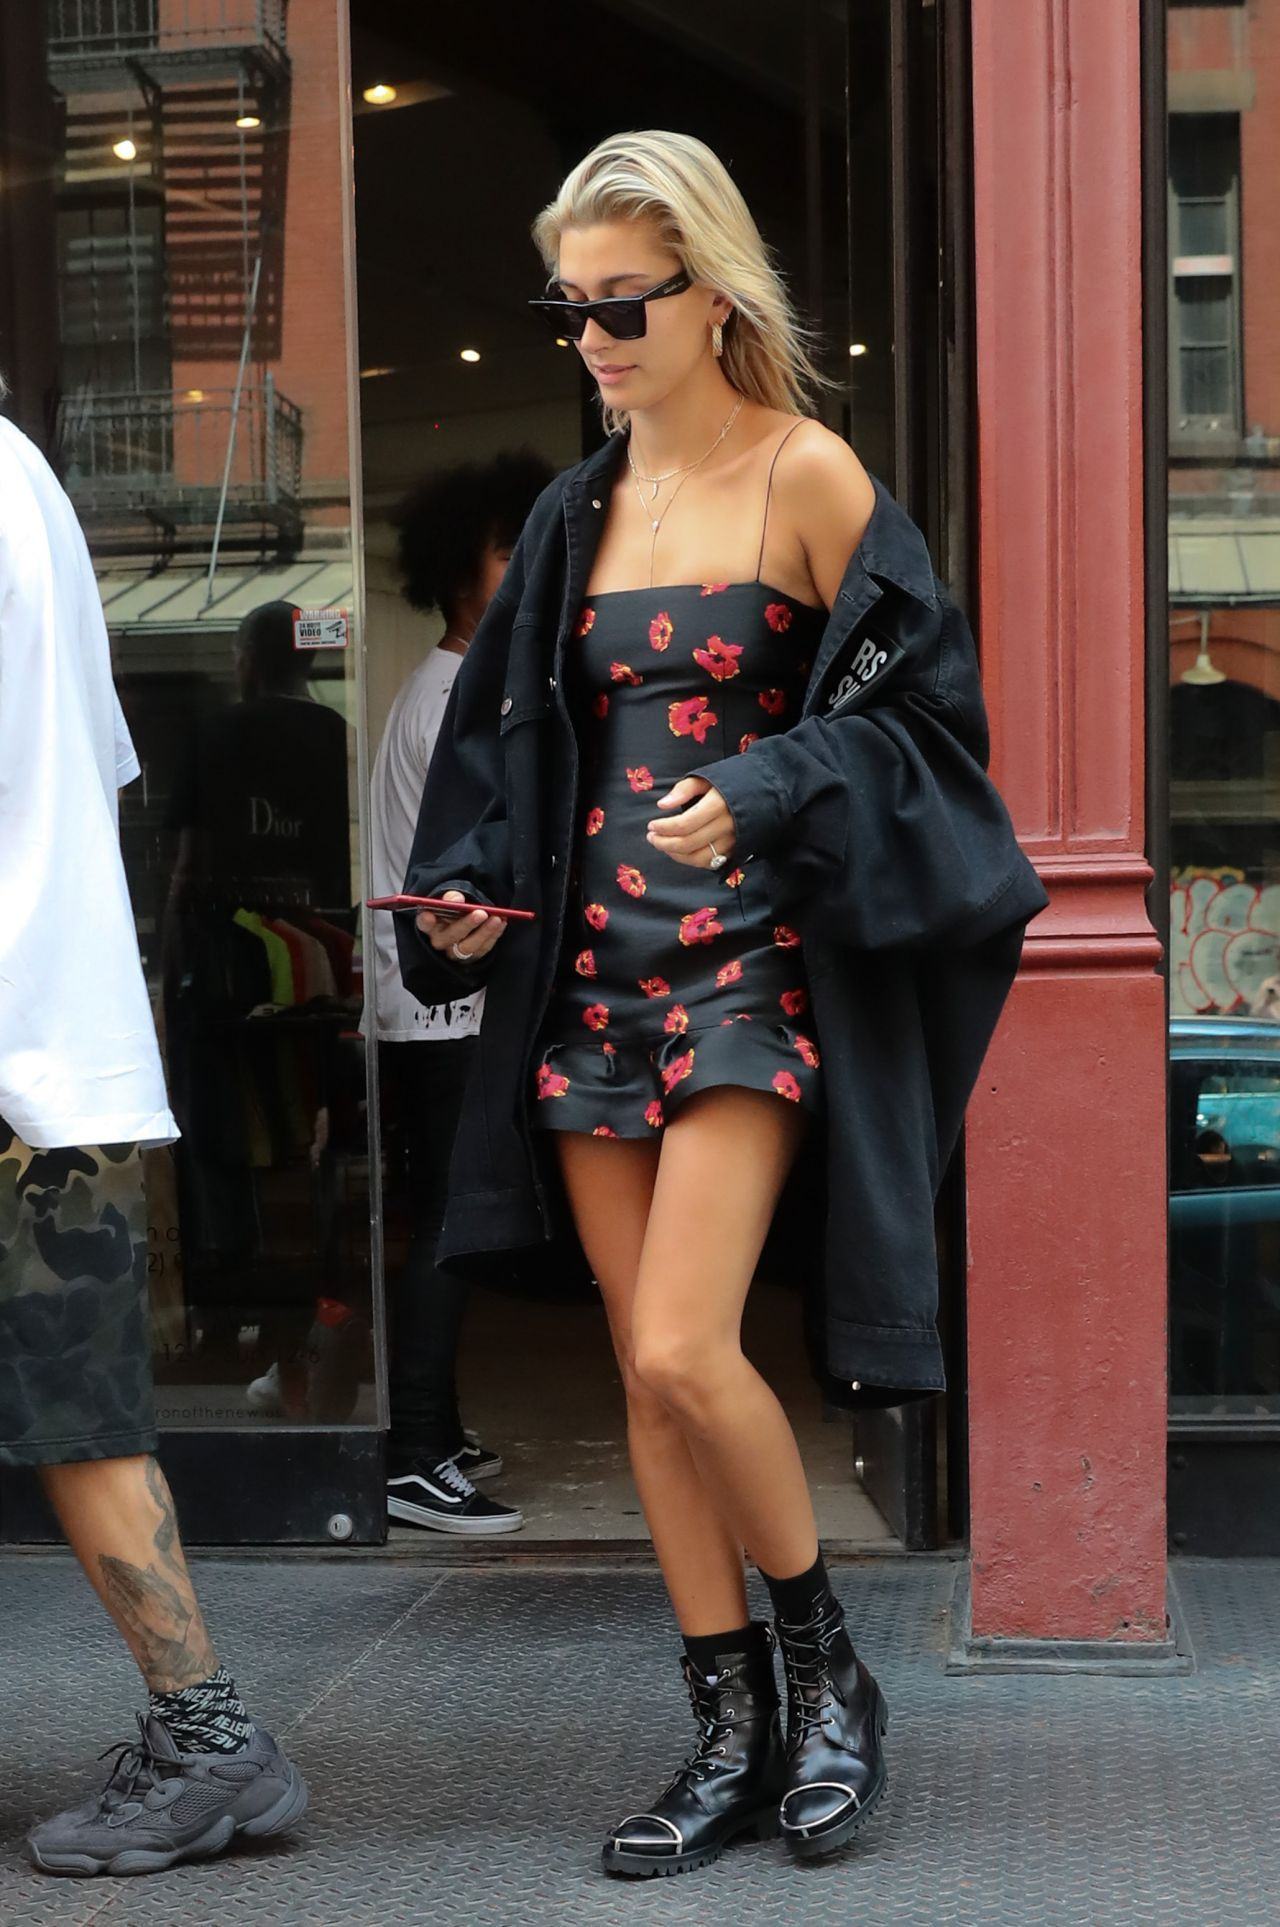 Hailey Baldwin And Justin Bieber Out In Nyc 07 27 2018